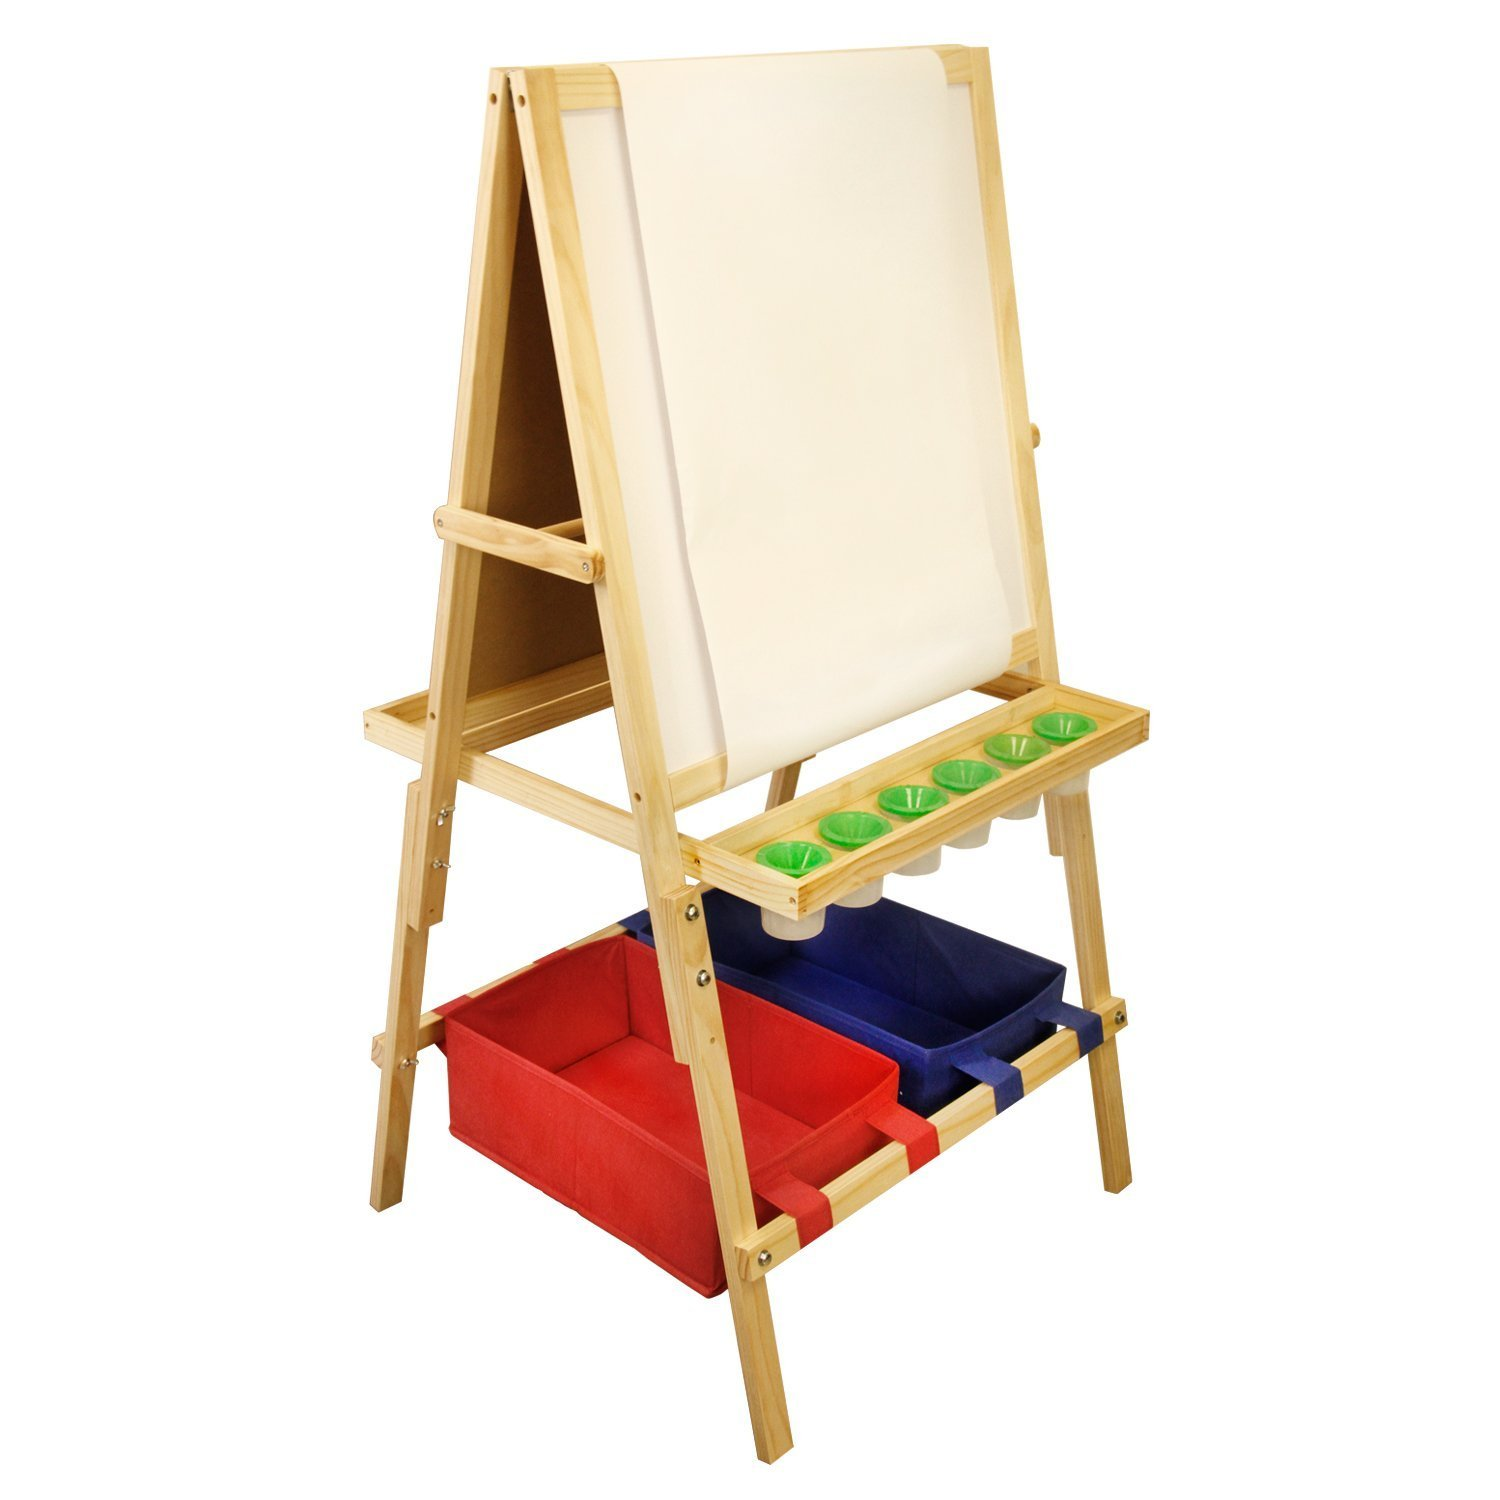 U.S. Art Supply Children's Cardiff Double-Sided Art Activity Easel with Chalkboard, Dry Erase Board, Paper Roll, 6 No-Spill Cups, 2 Storage Bins, 2 Trays - Kids Learn to Paint, Draw, Write, Have Fun